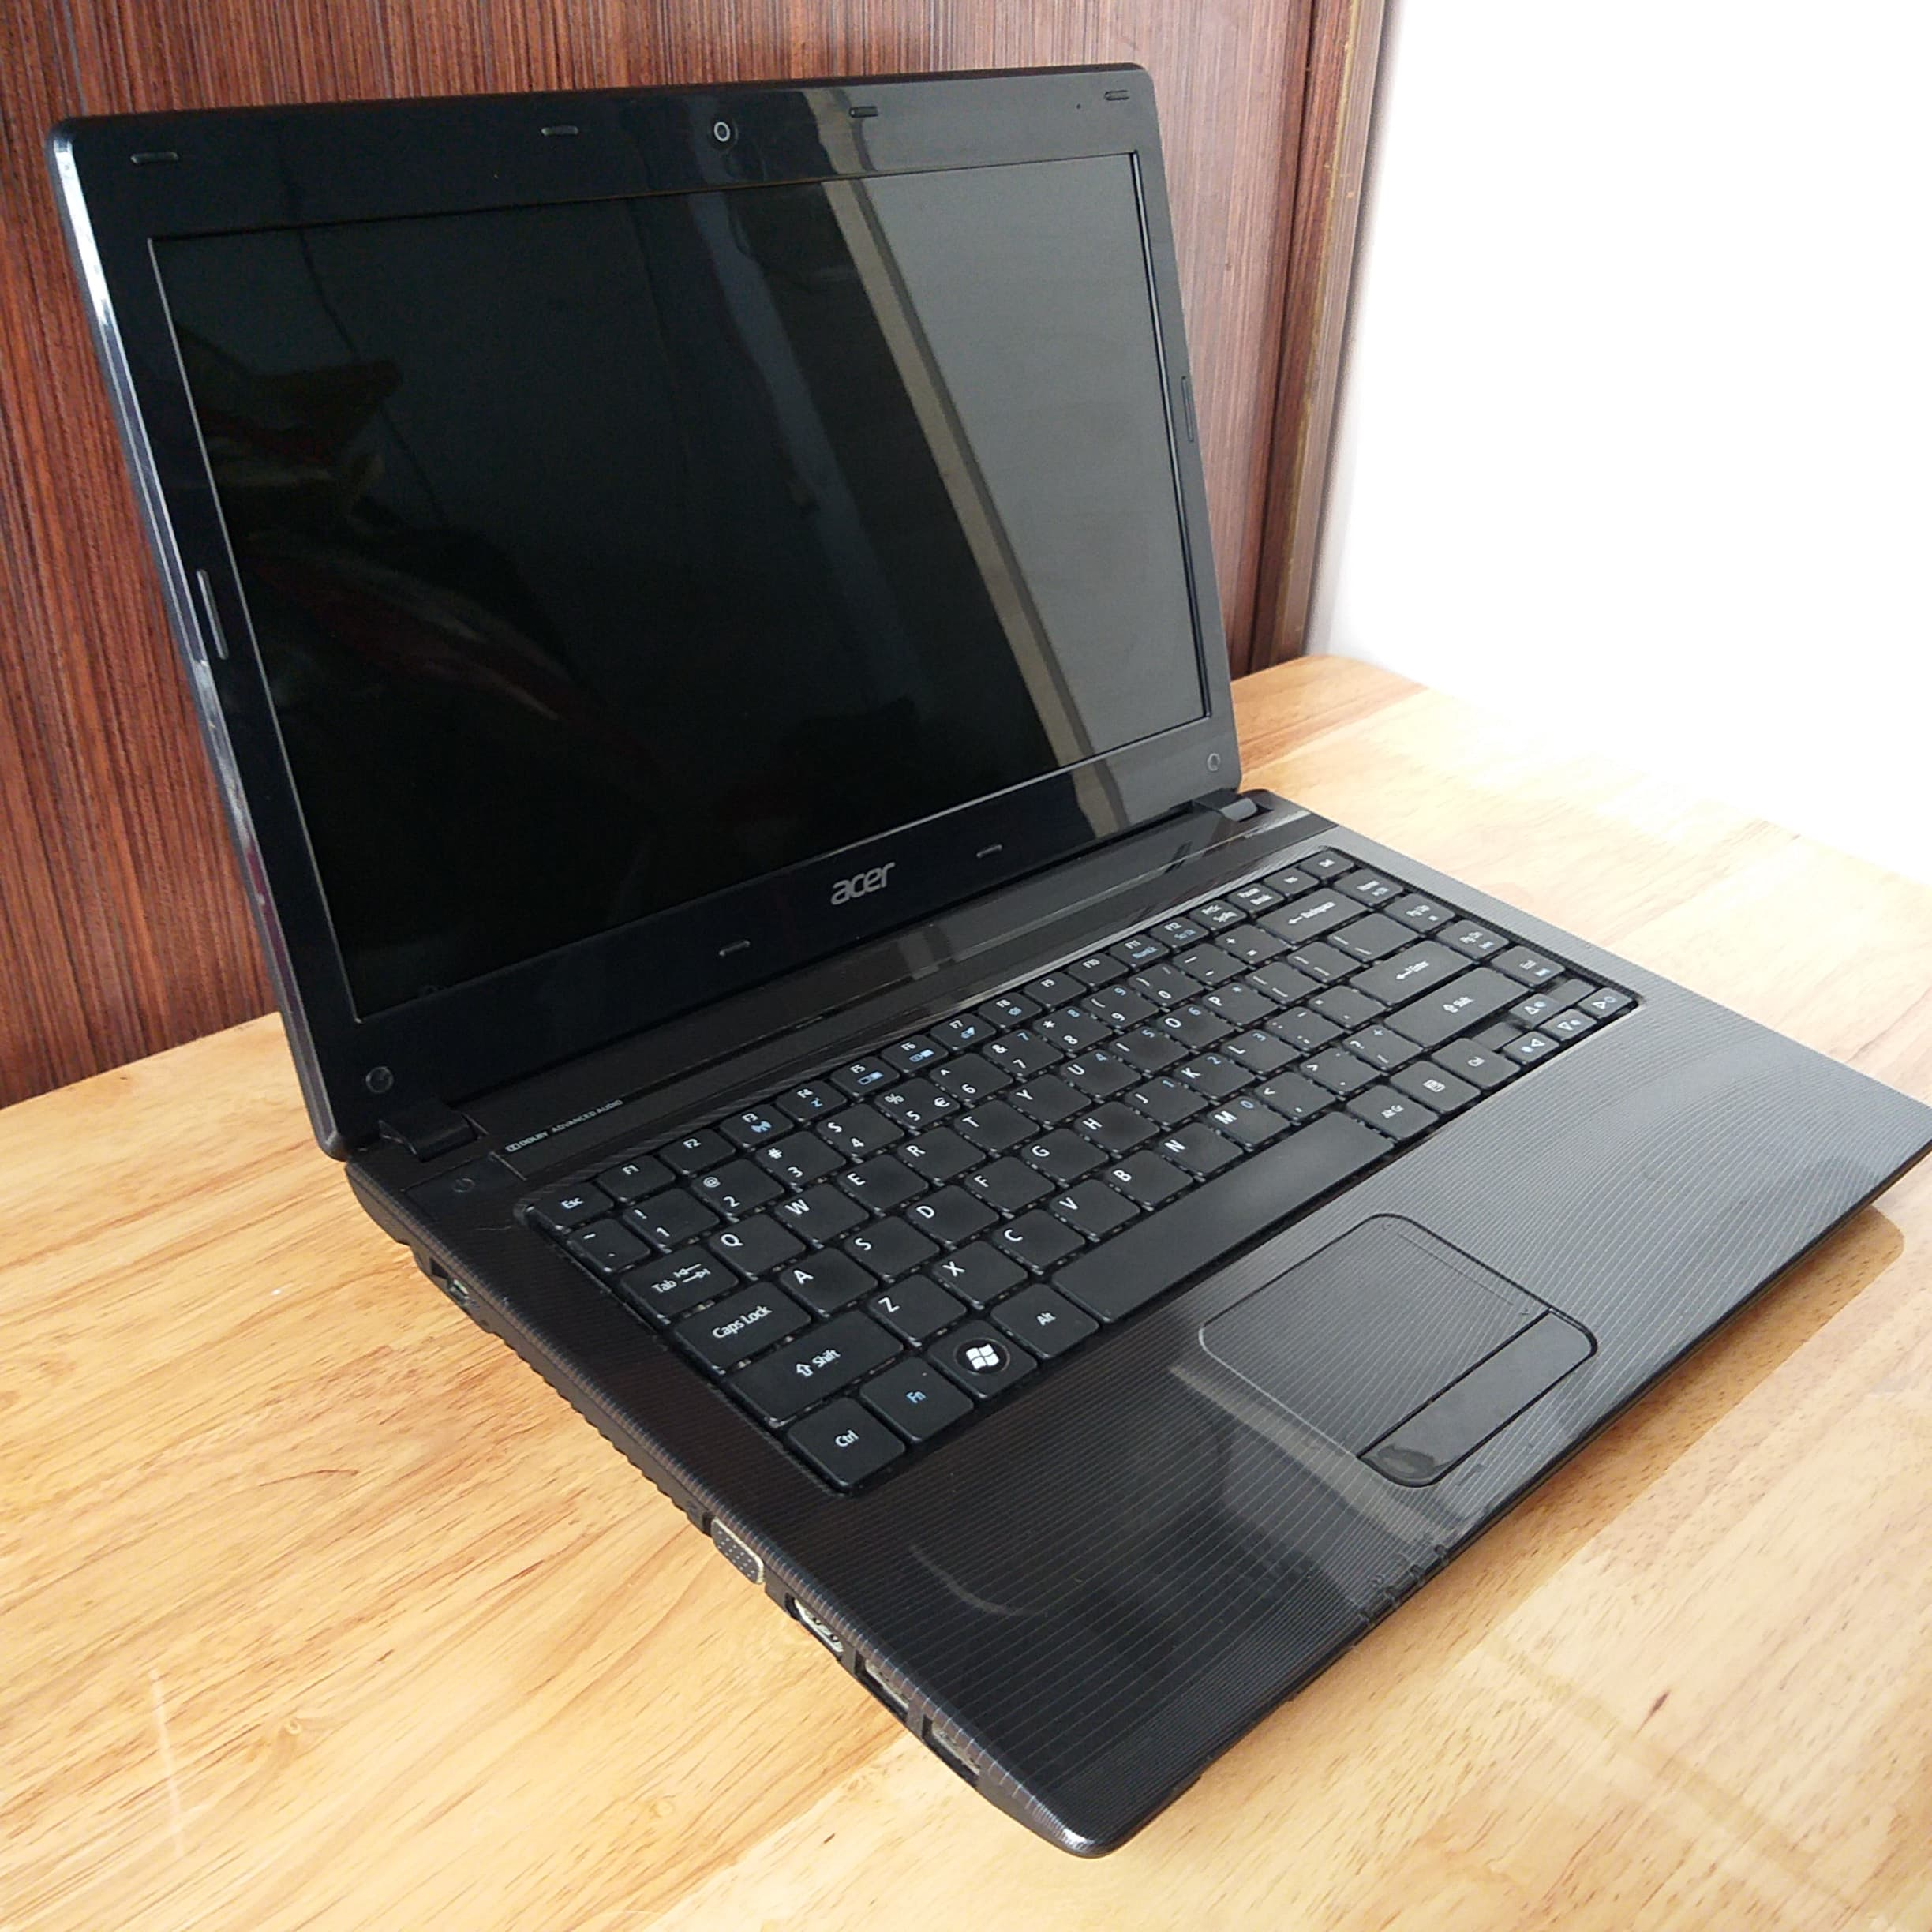 Acer Aspire 4752, I5 2430M RAM 4GB HDD 500GB